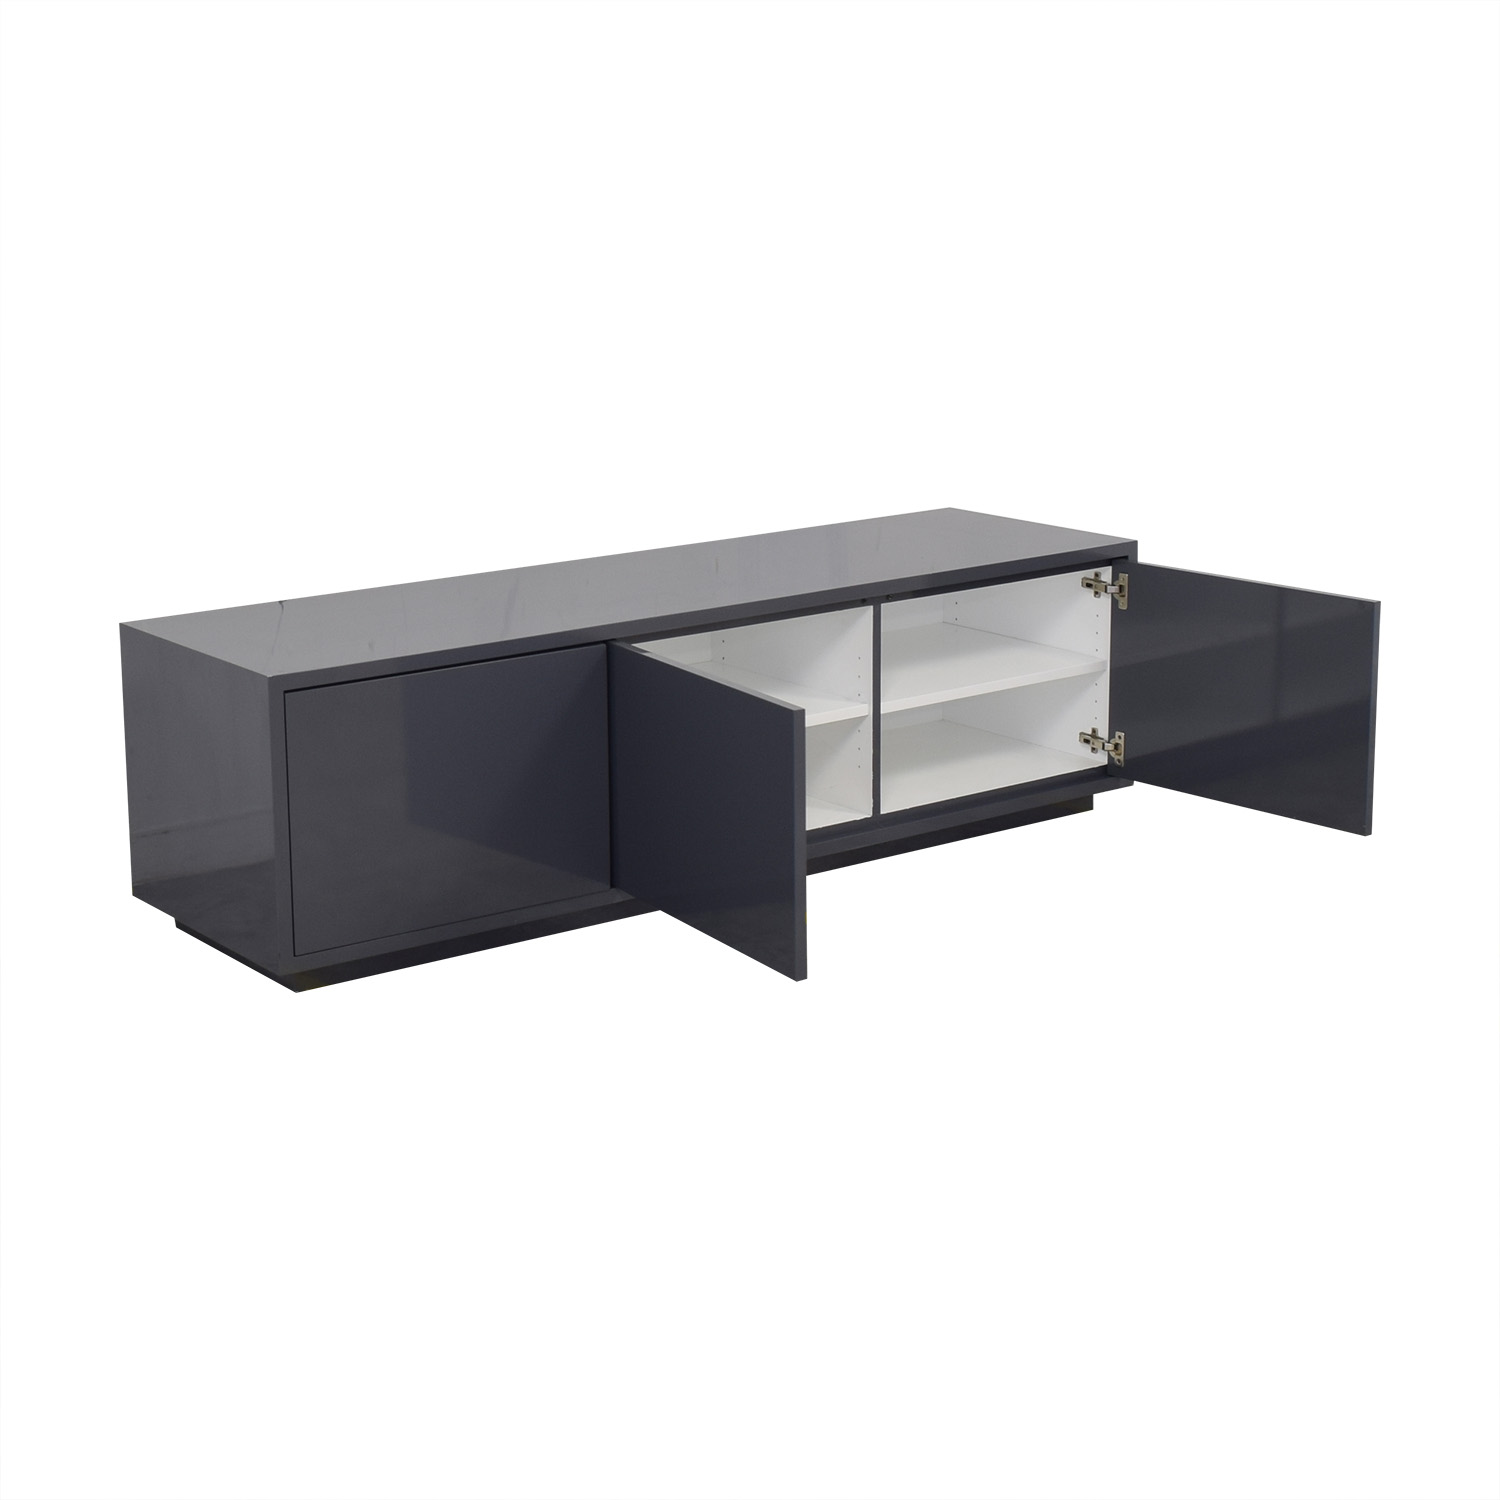 shop Raymour & Flanigan Raymour & Flanigan Triple Cabinet Credenza online